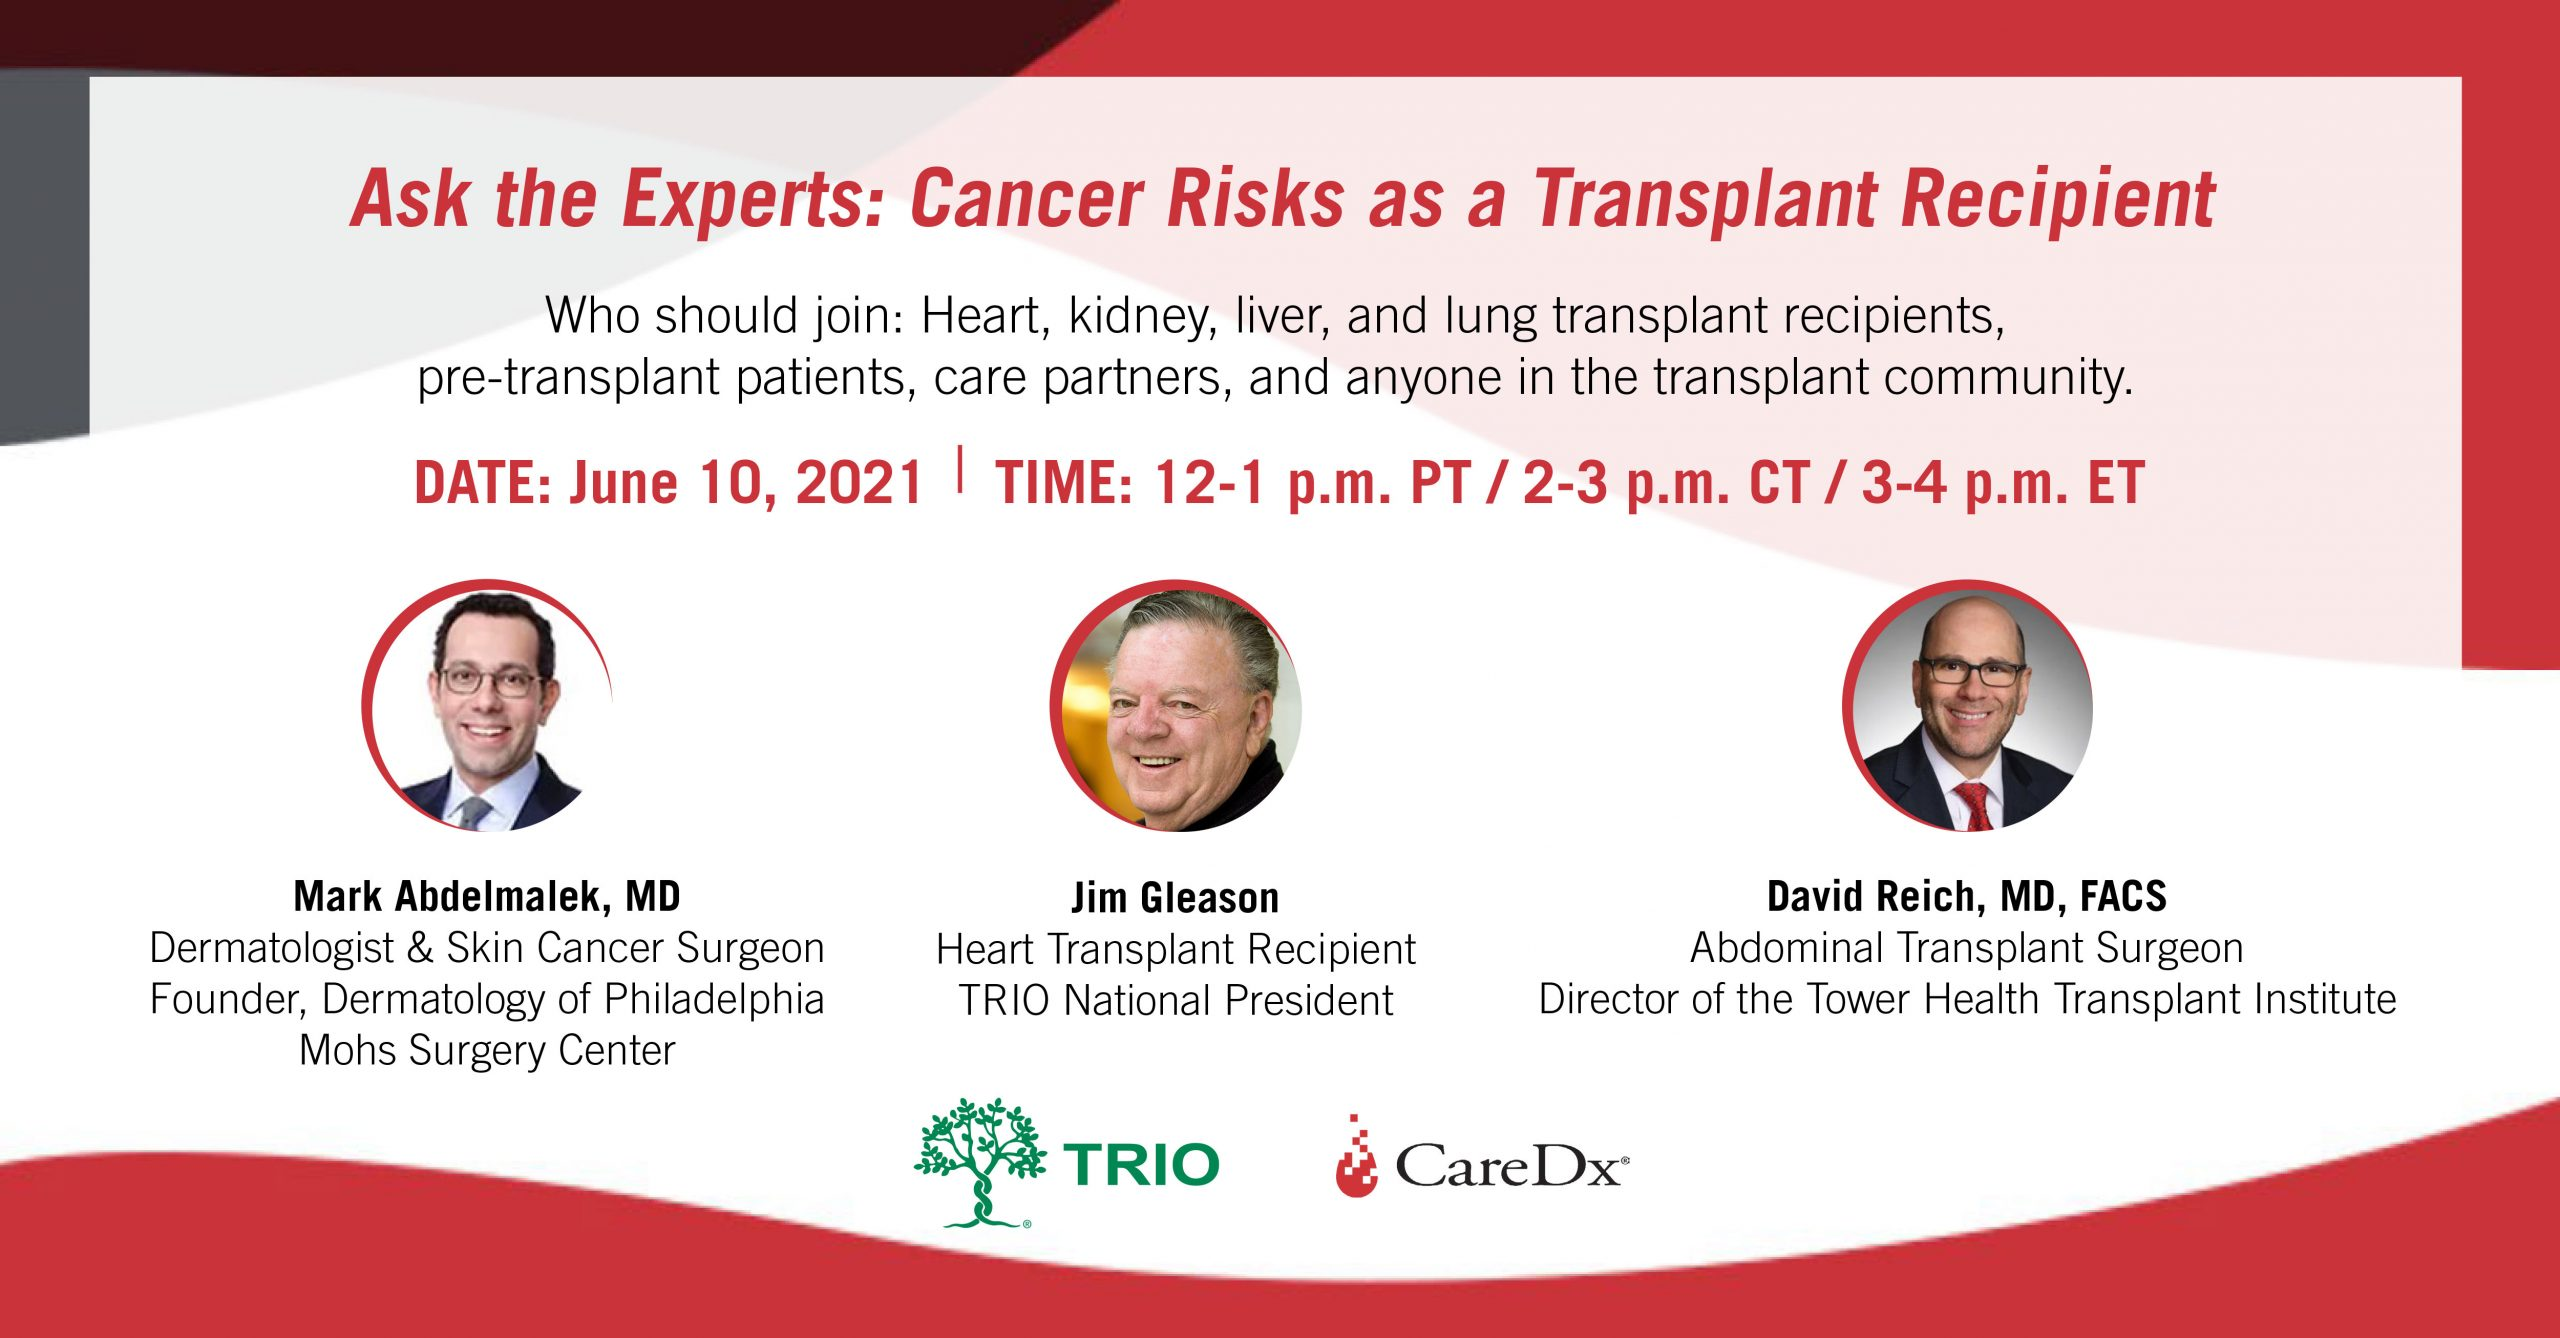 Ask the Experts: Cancer Risks as a Transplant Recipient